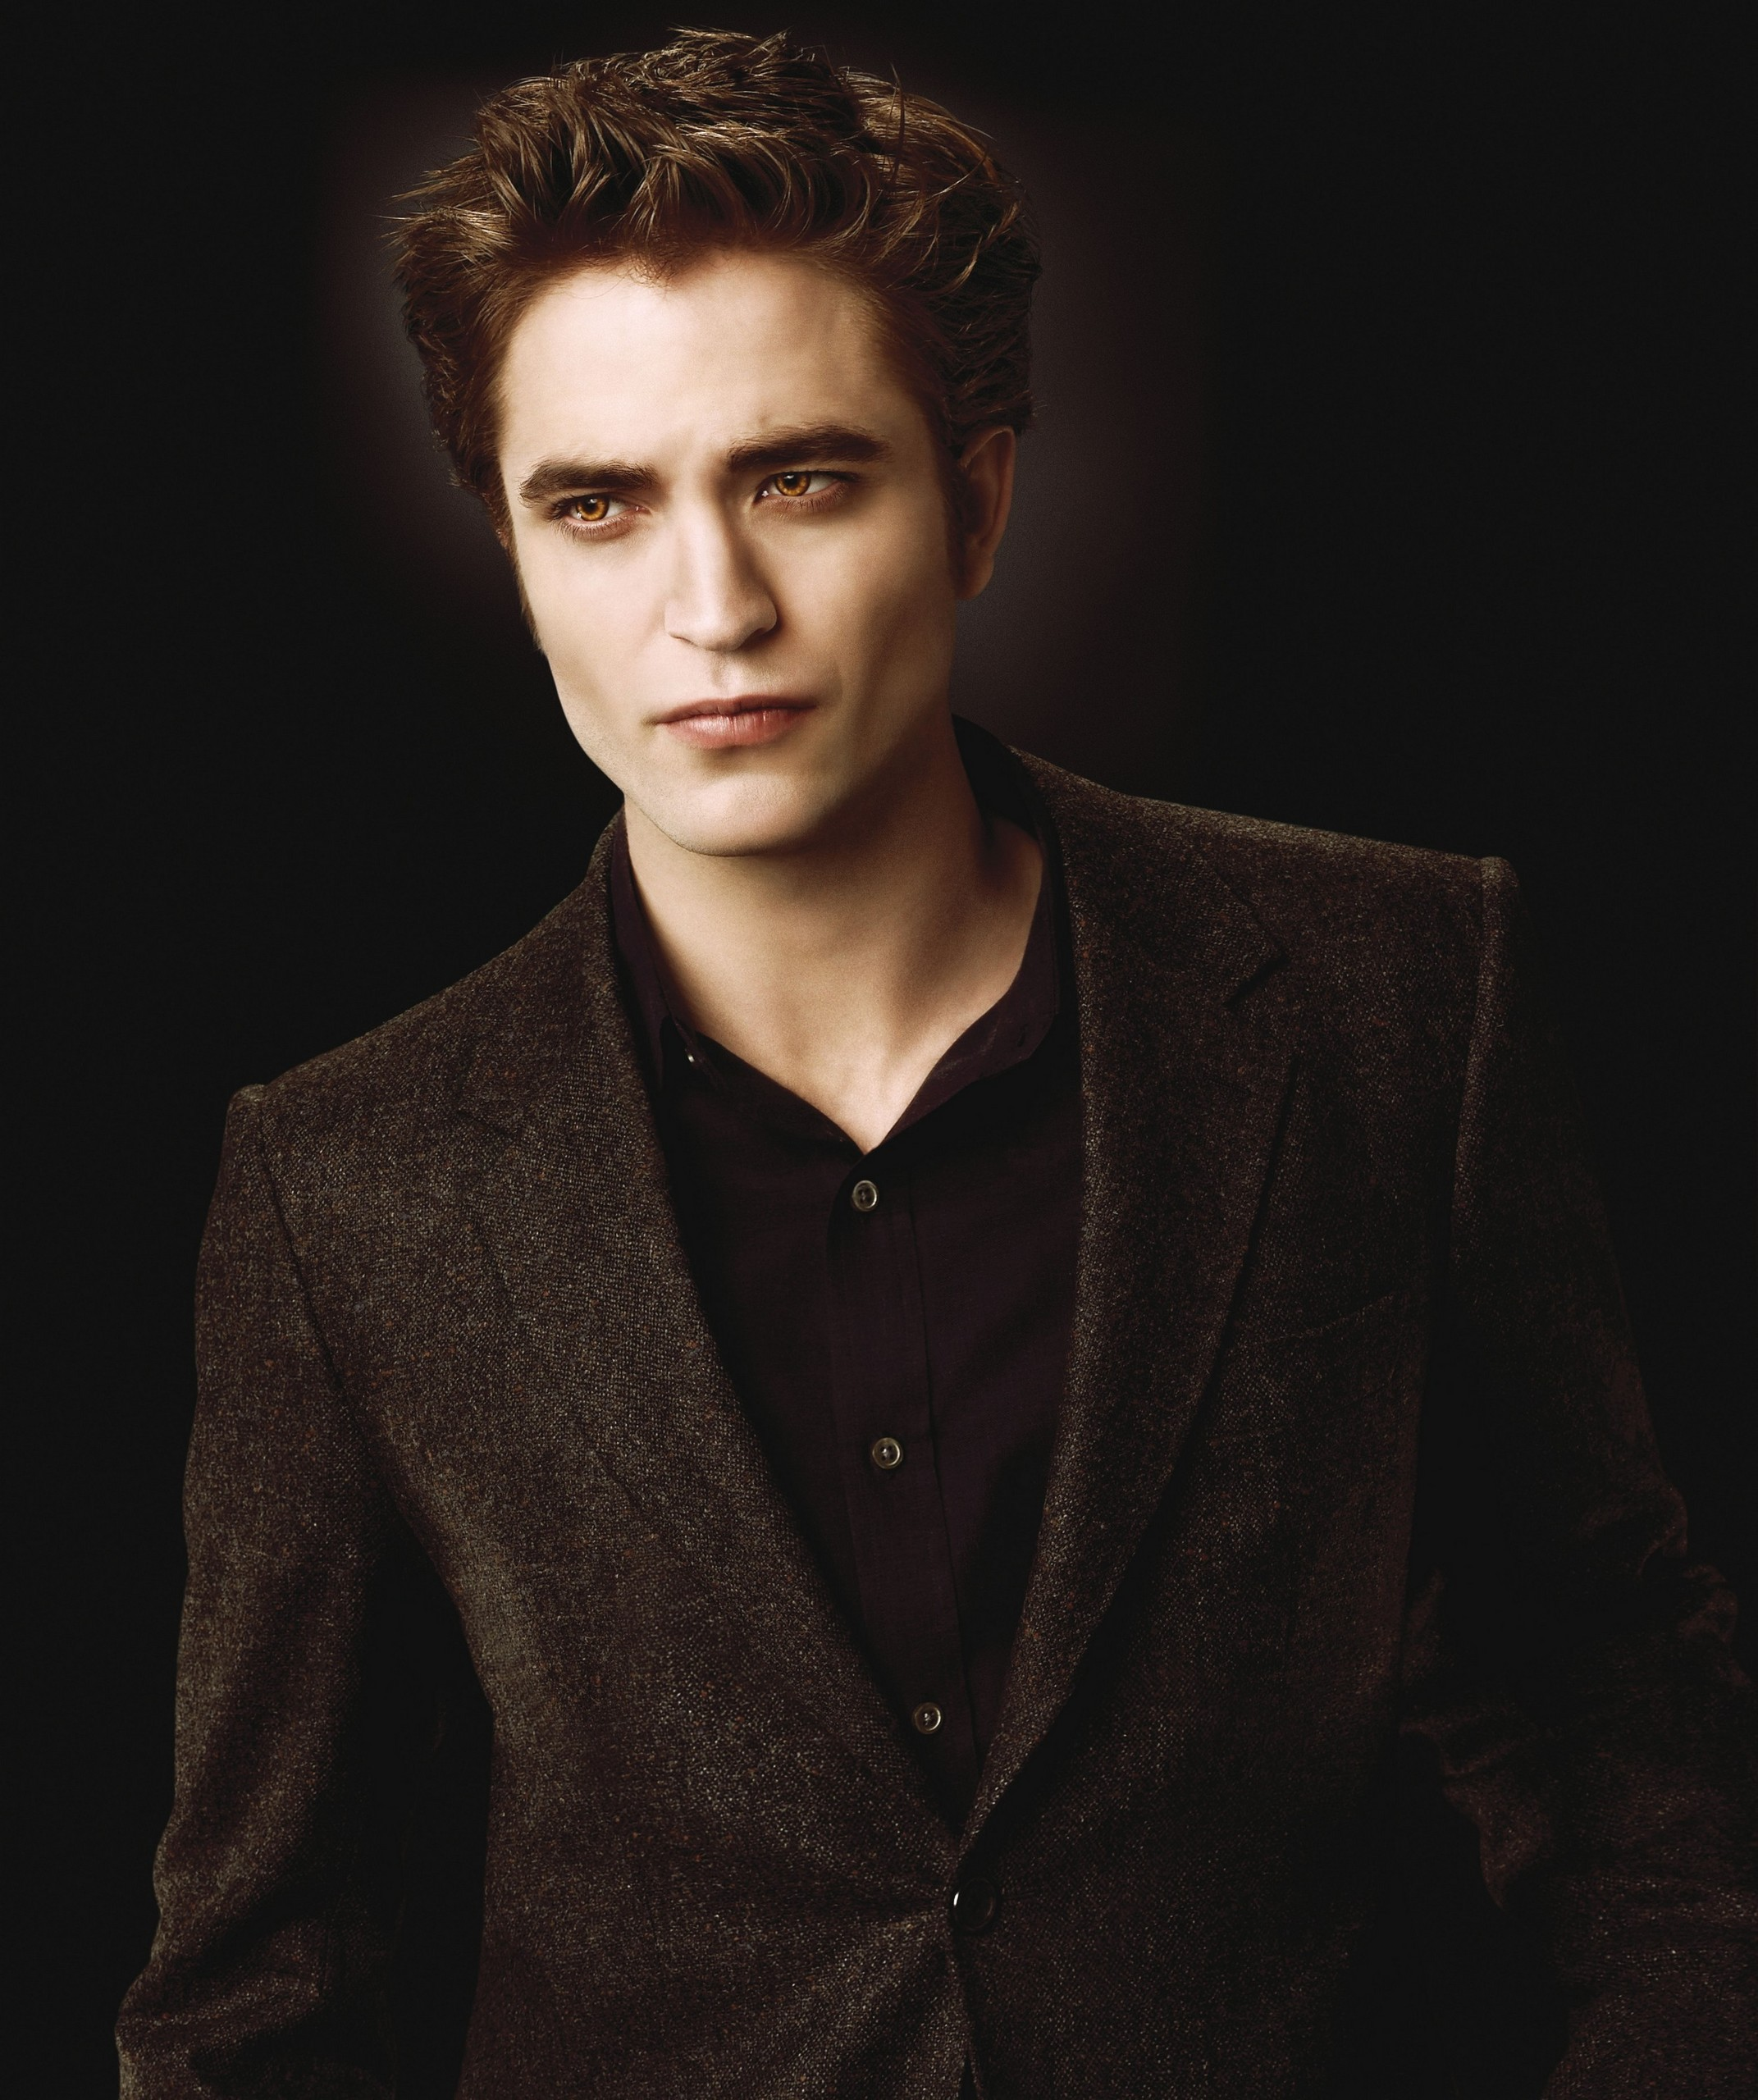 Hq edward cullen twilight crep sculo photo 9027164 Twilight edward photos